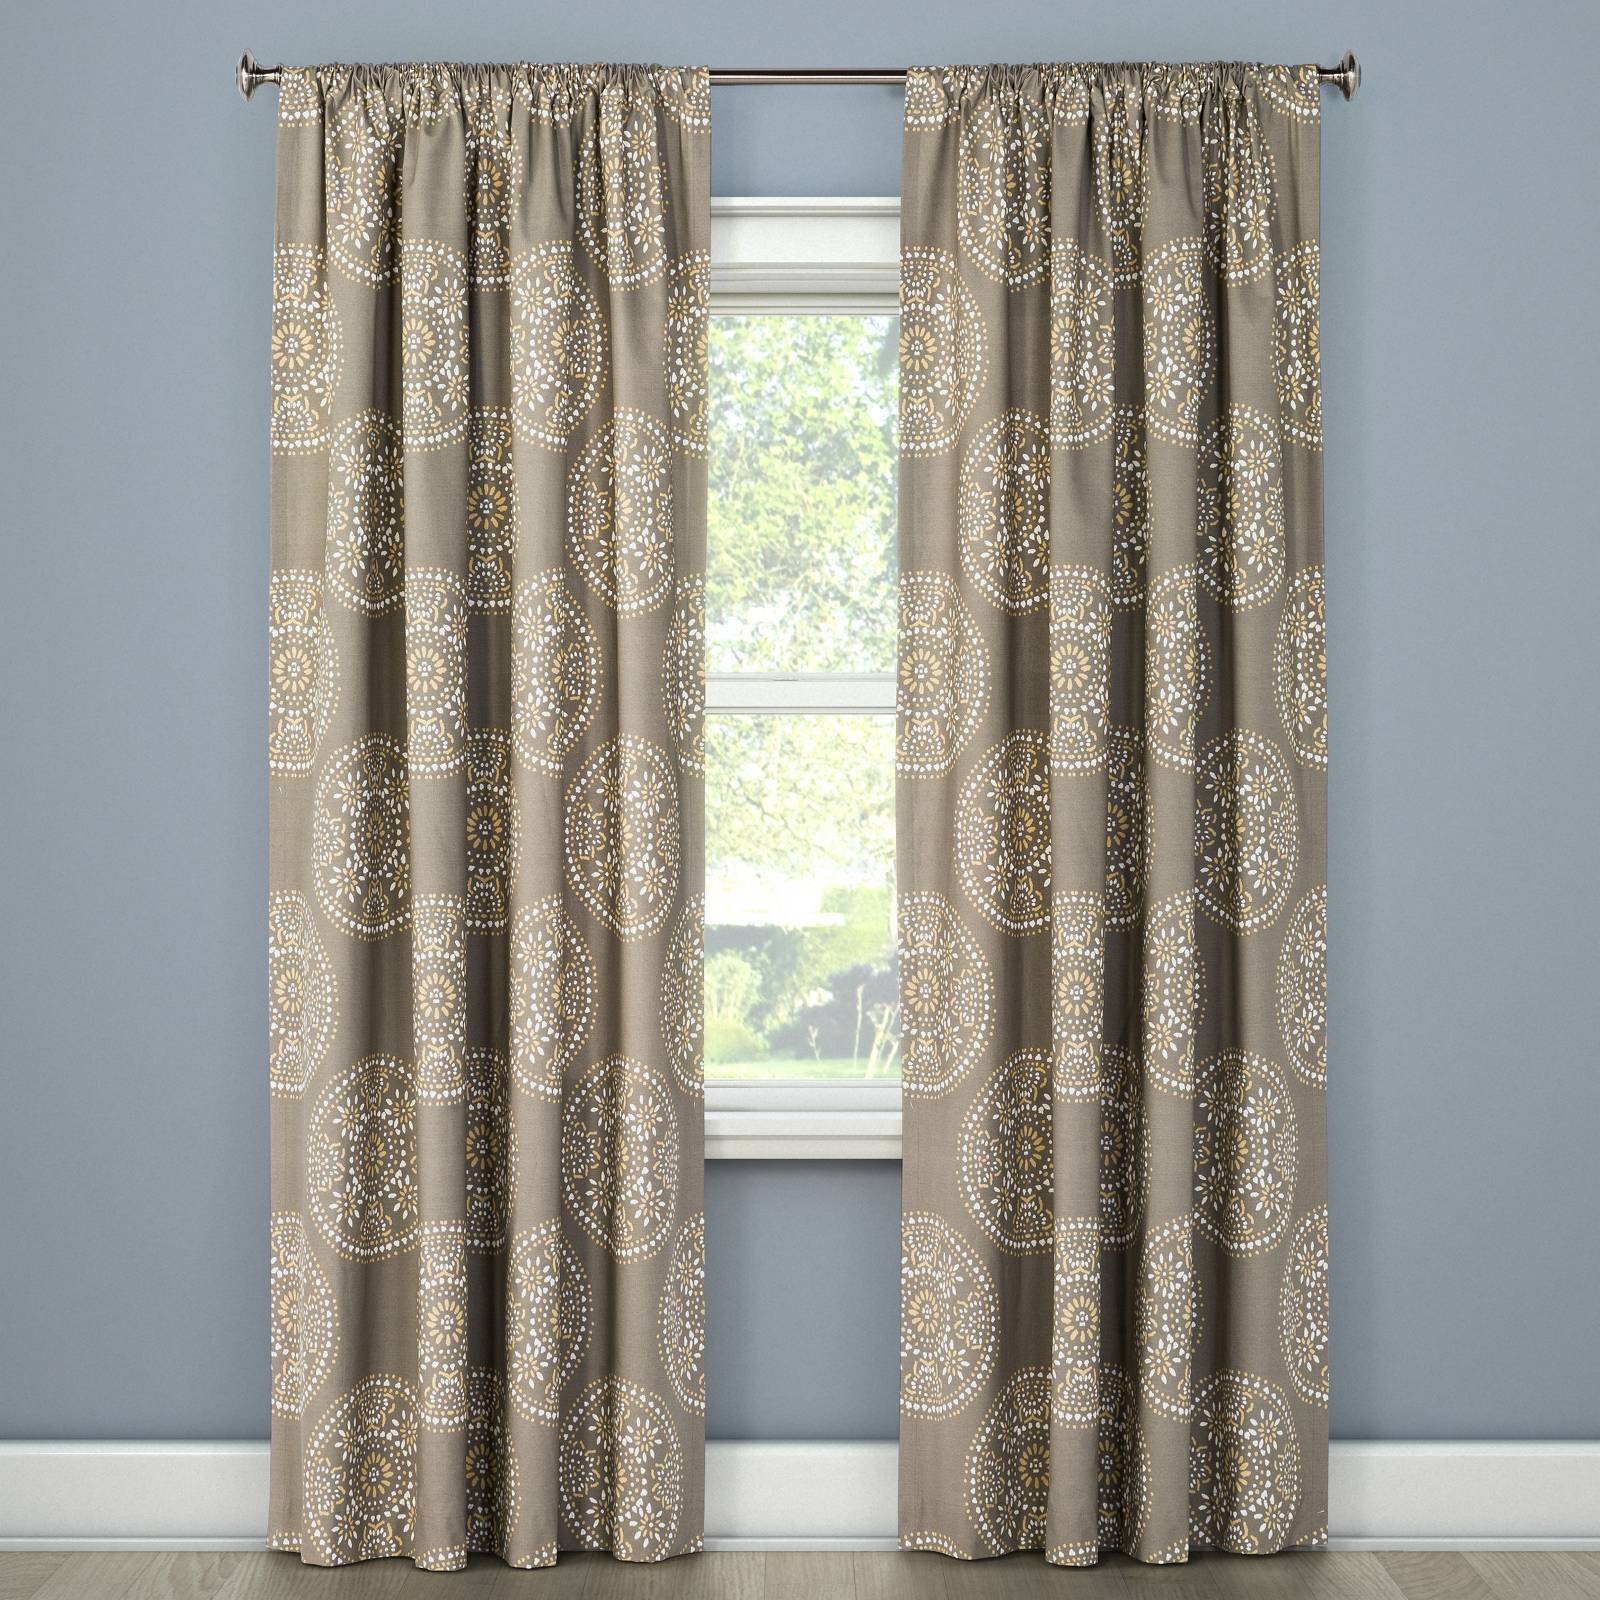 Target Curtain Panels Details About Tile Medallion Curtain Panel Gray Stone Threshold Target New 84l New